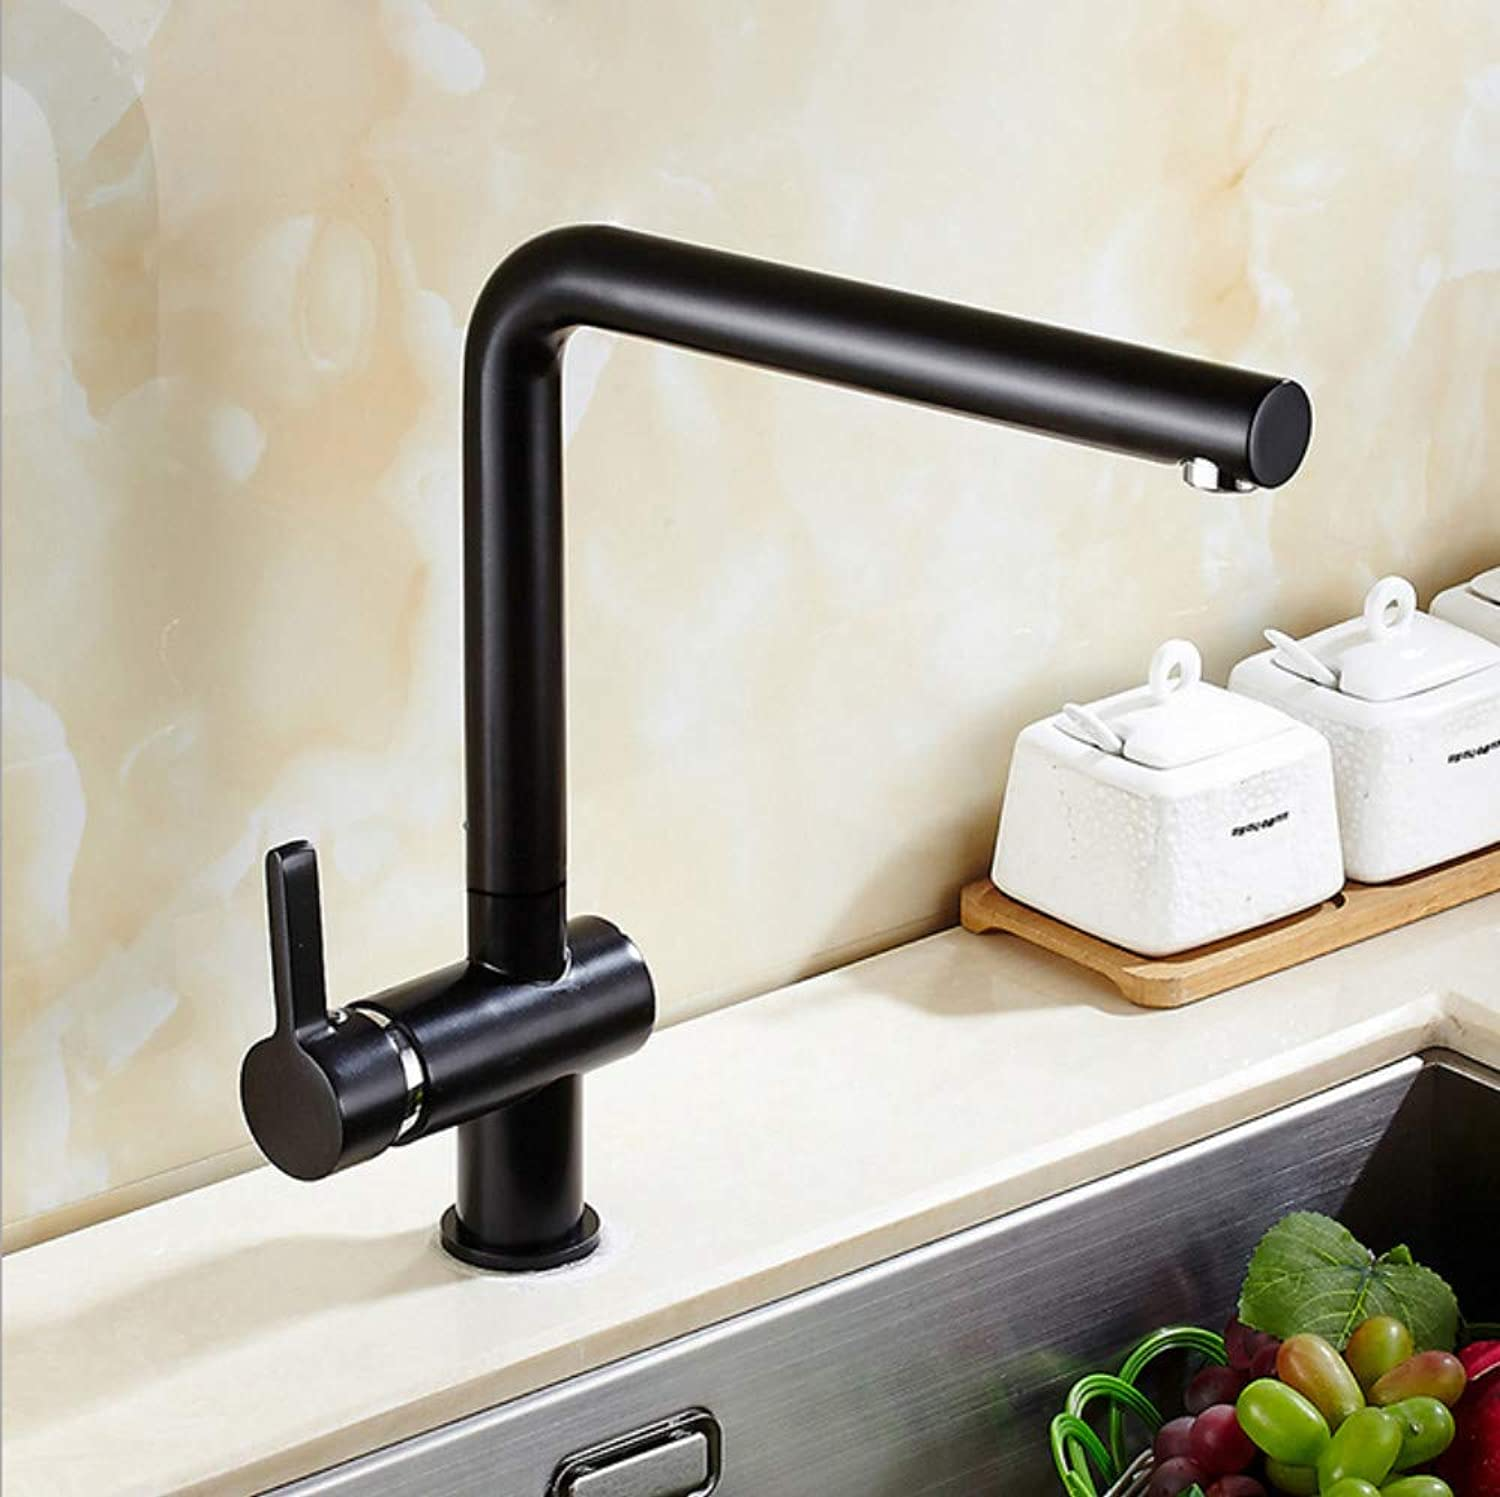 Xiujie Faucet Copper Black Kitchen redatable Faucet Single Handle Single Hole Hot and Cold Bathroom Basin Faucet